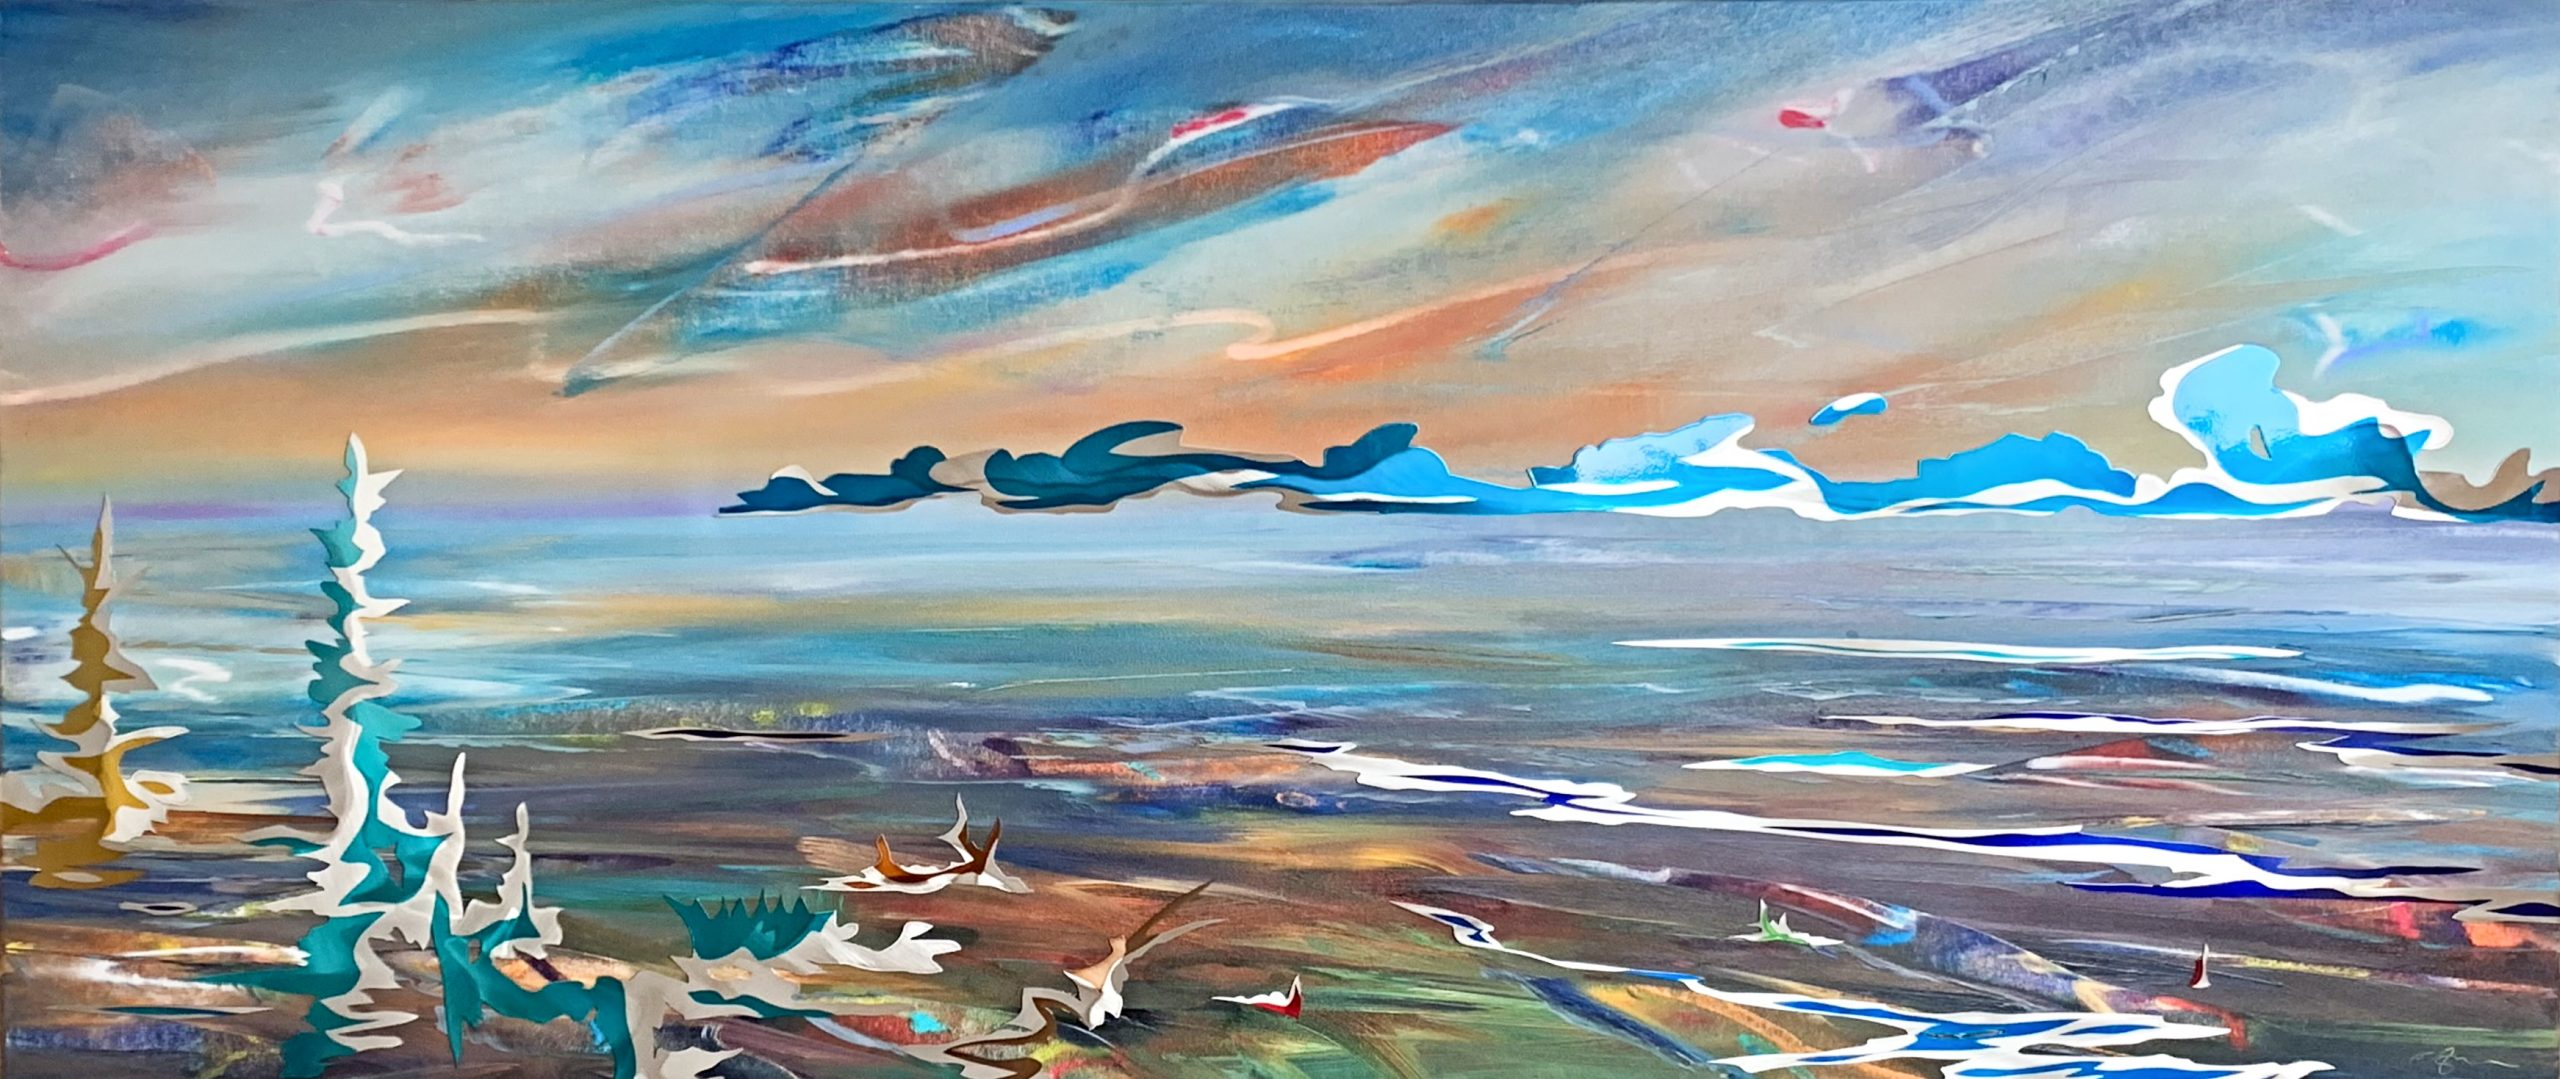 Awakening, mixed media landscape painting by Joel Masewich | Effusion Art Gallery + Cast Glass Studio, Invermere BC